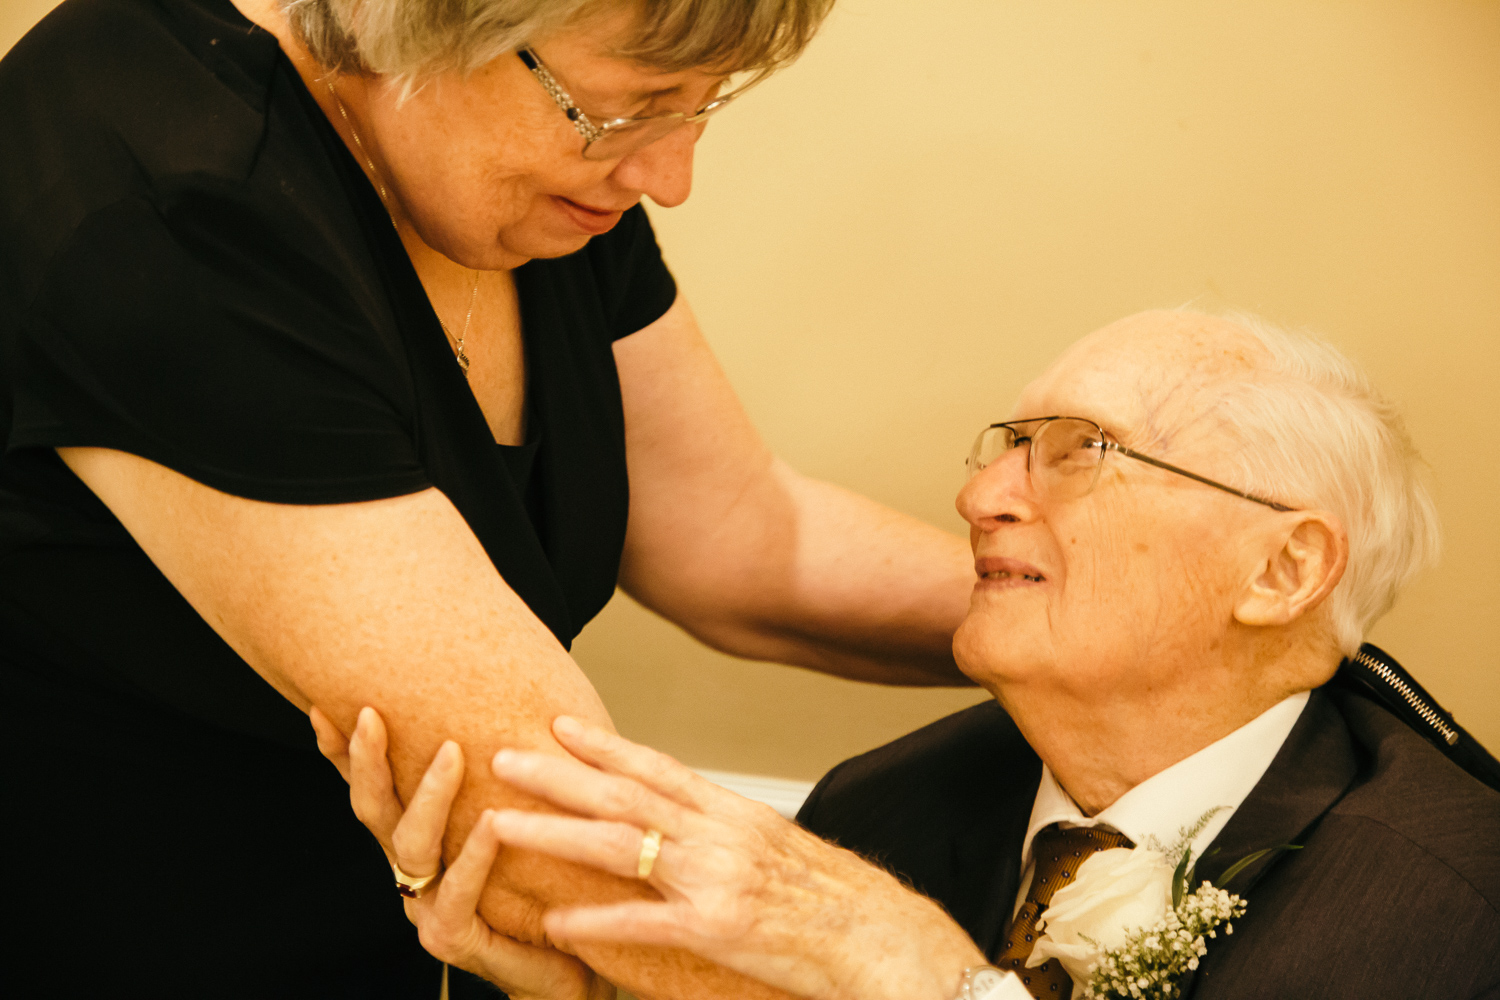 elderly_wedding-59.jpg